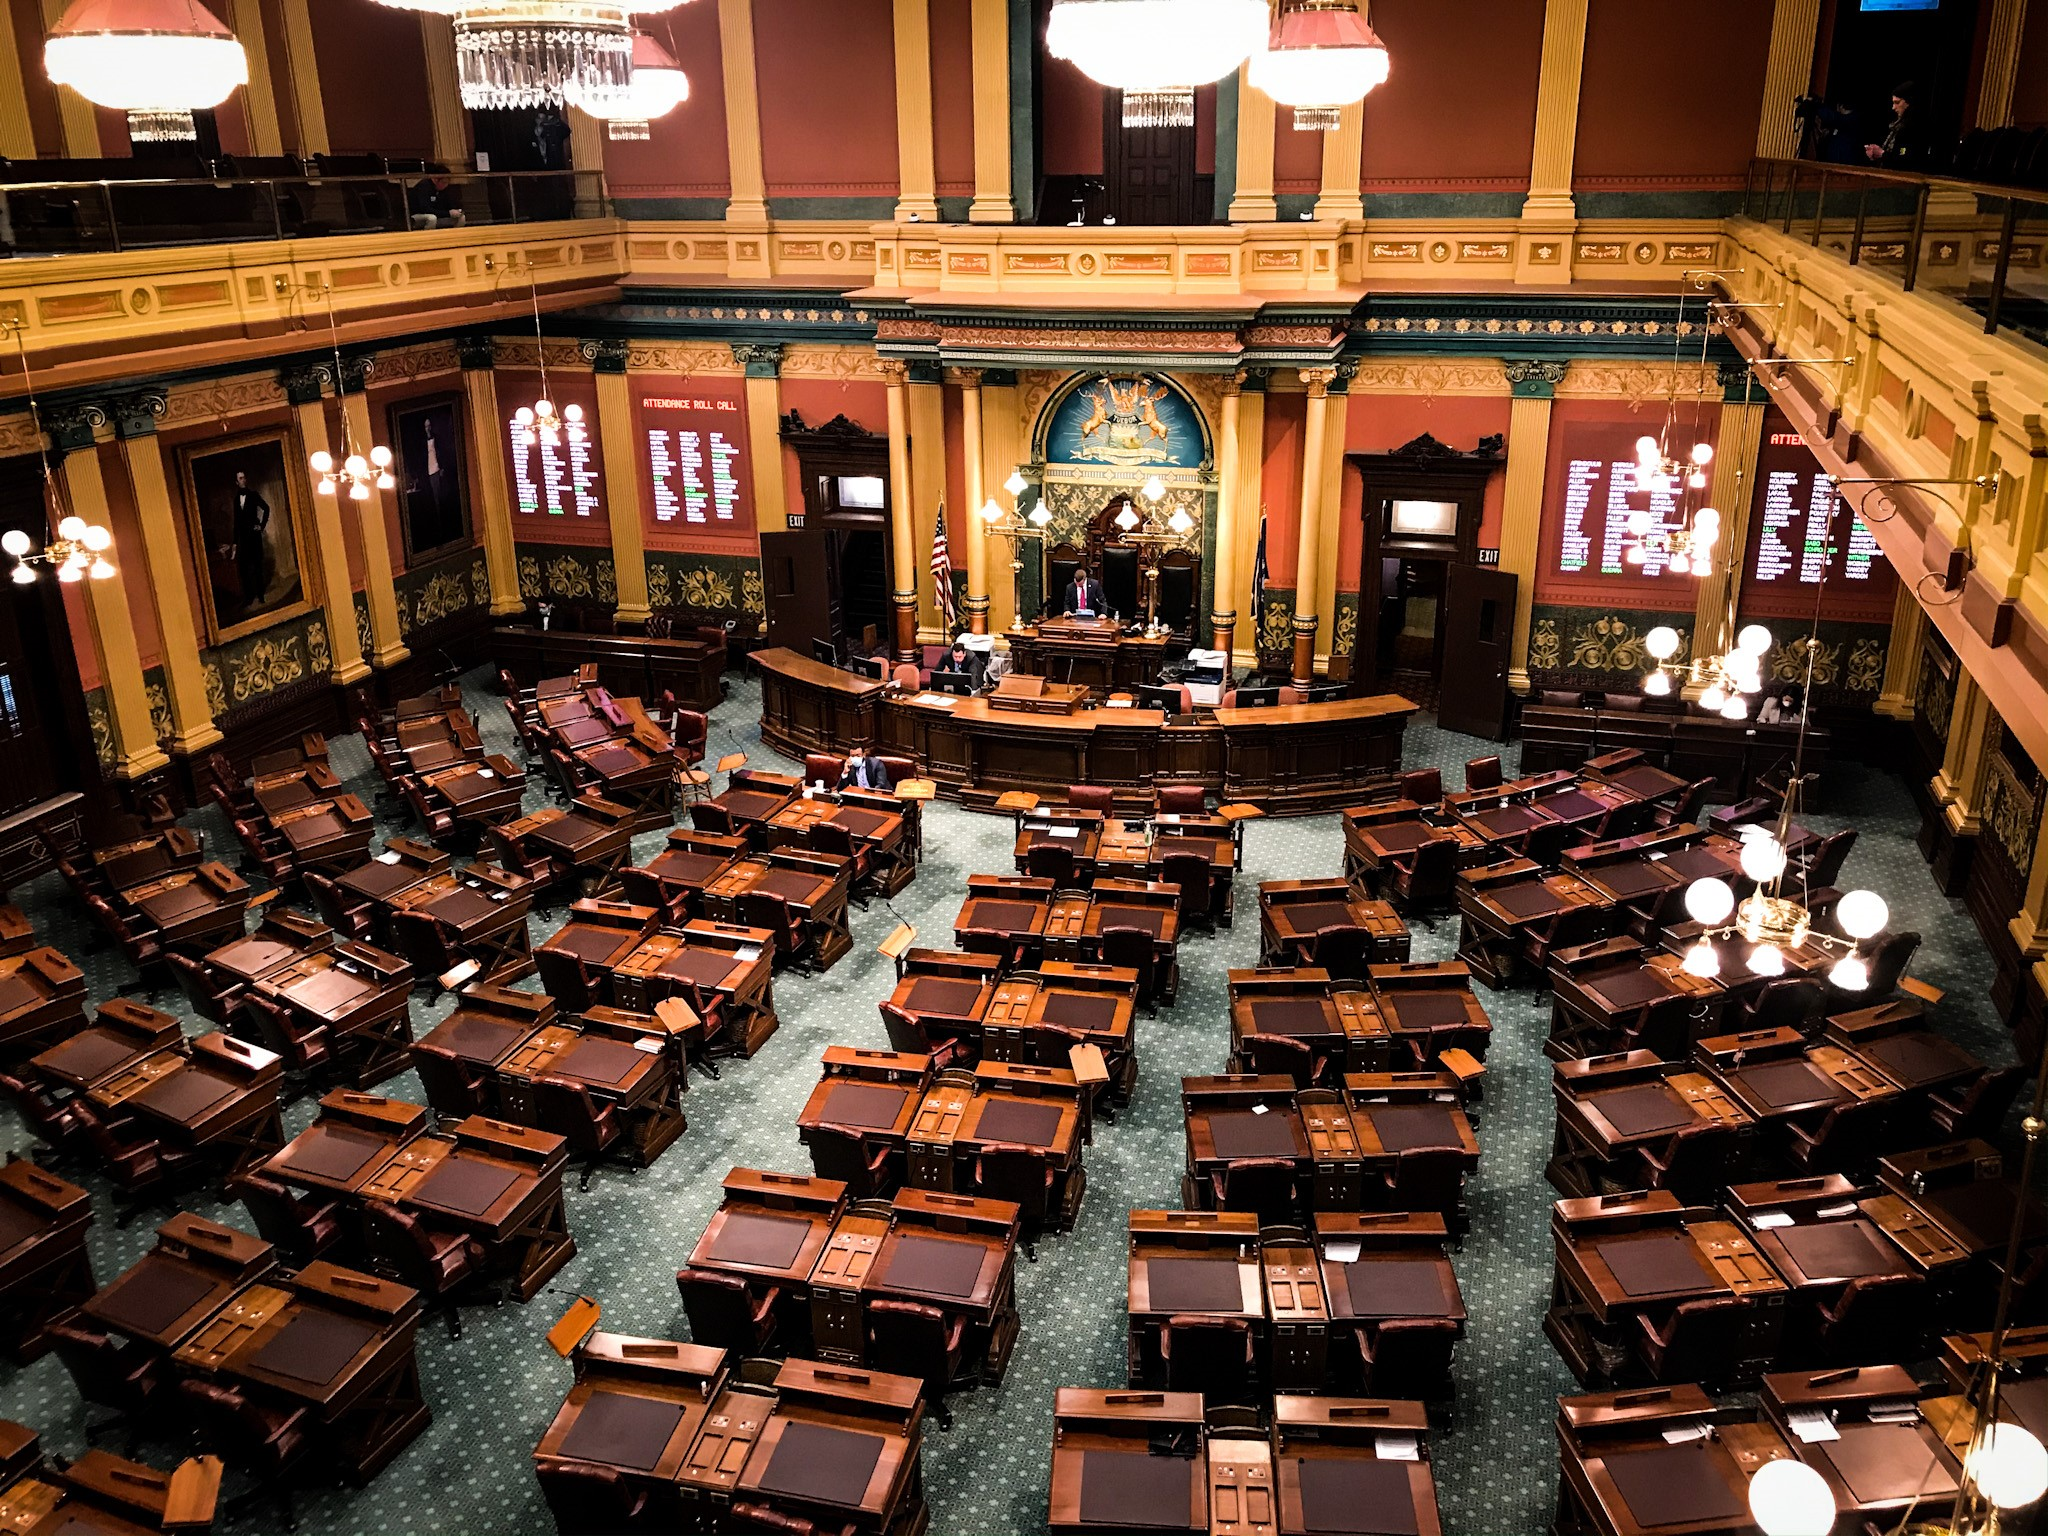 The Michigan House chamber sits nearly empty Tuesday, April 7, 2020, under Gov. Gretchen Whitmer's stay-at-home order. (SBG/Mikenzie Frost)